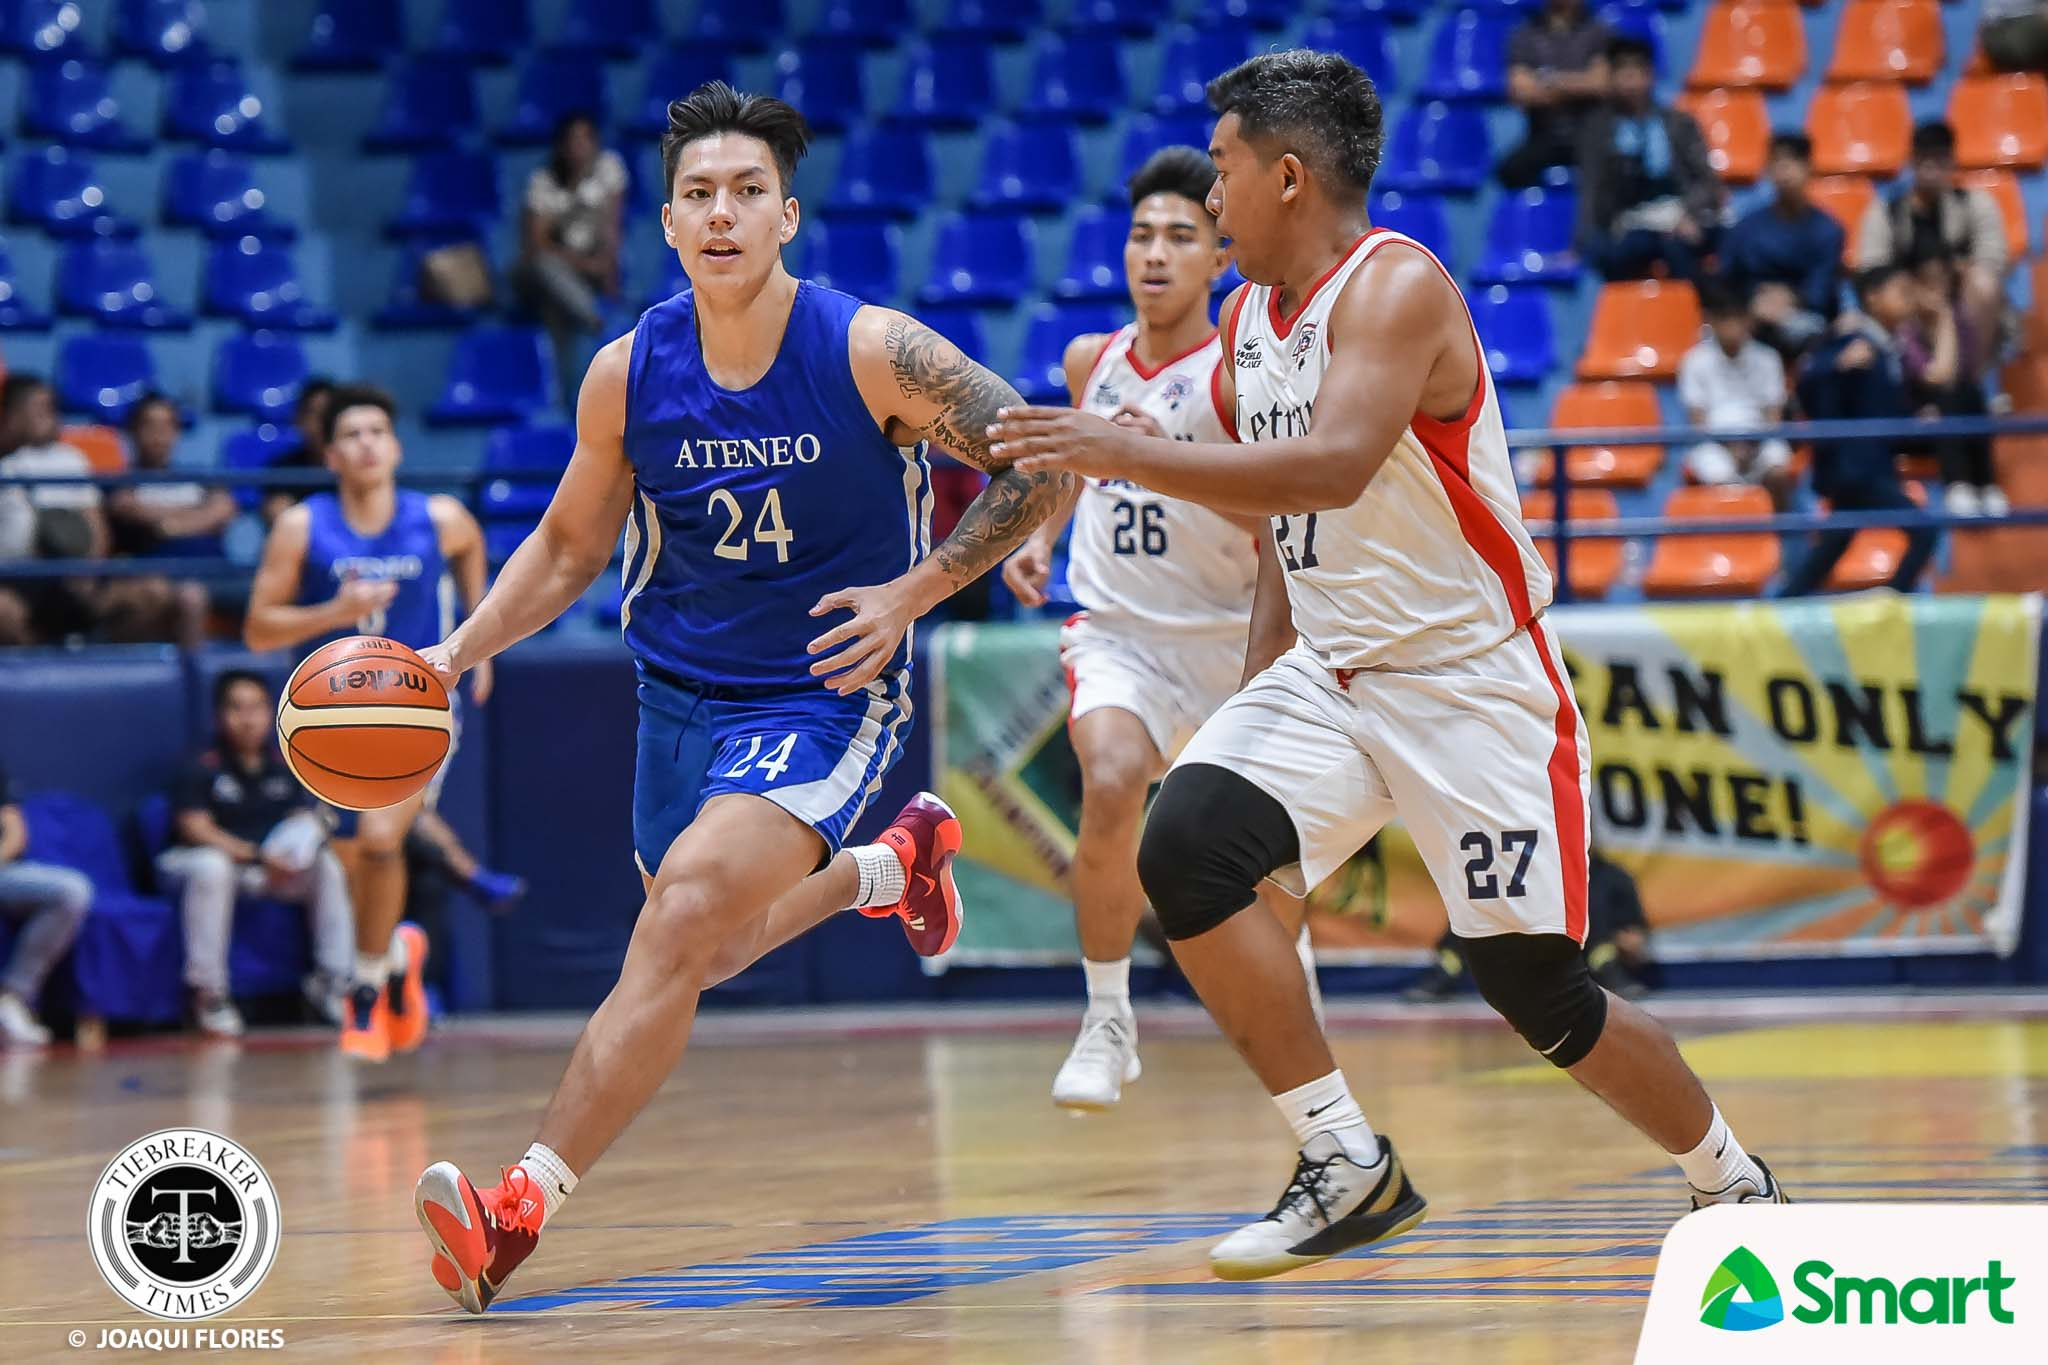 Tiebreaker Times Dwight Ramos getting used to juggling Gilas, Ateneo duties 2021 FIBA Asia Cup Basketball Gilas Pilipinas News  Gilas Pilipinas Men Dwight Ramos Ateneo Men's Basketball 2021 FIBA Asia Cup Qualifiers 2020 PCCL National Championship